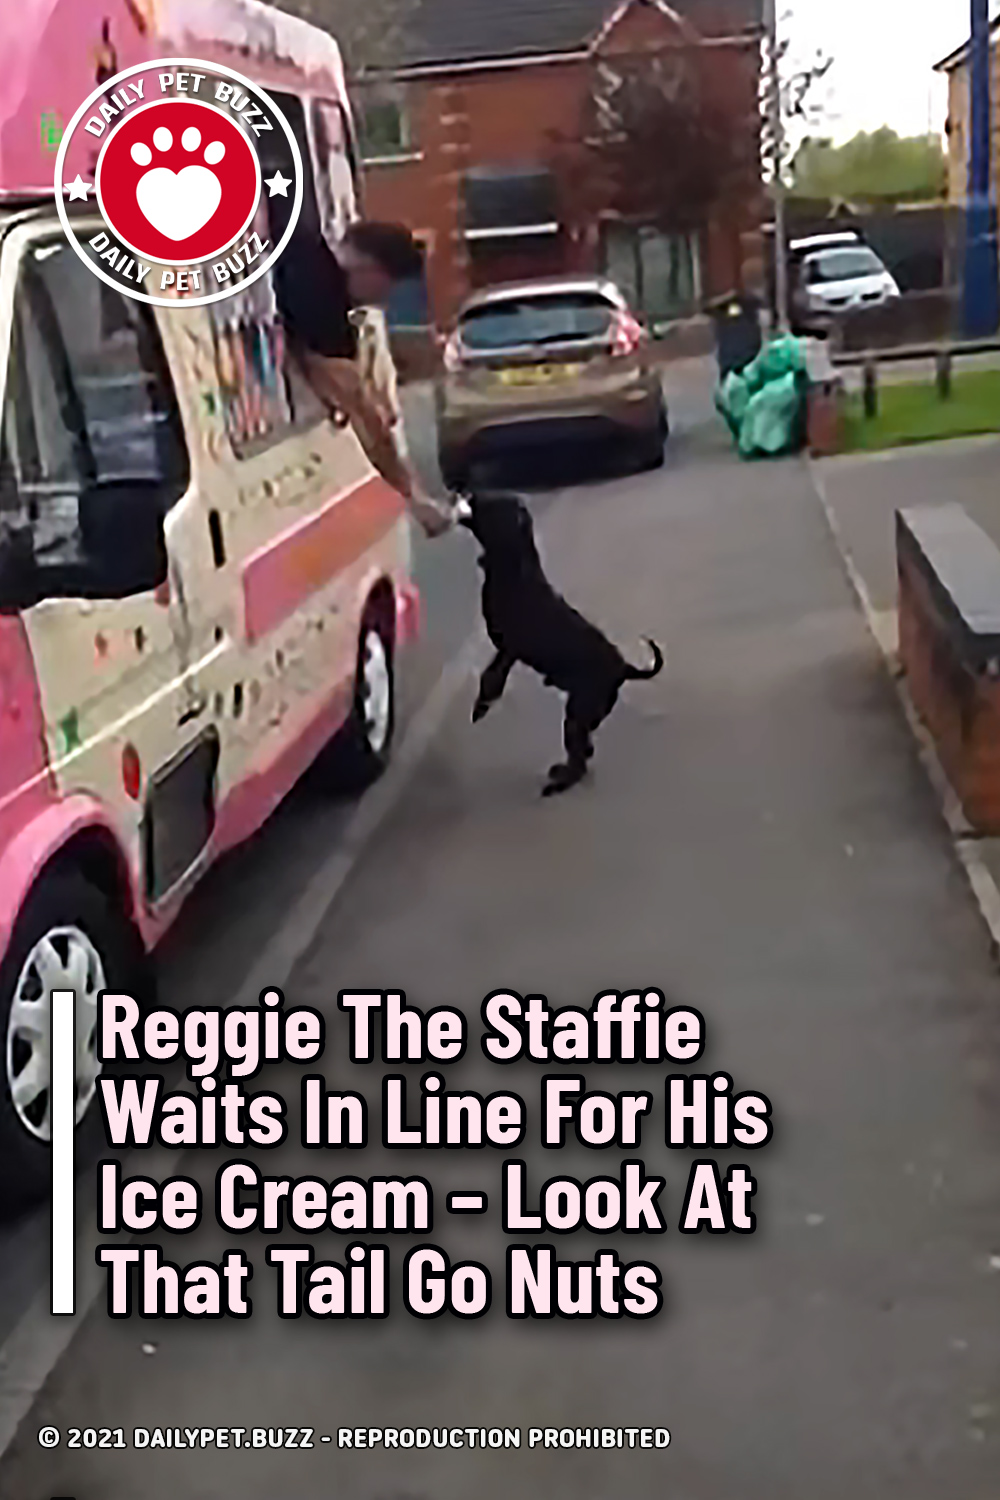 Reggie The Staffie Waits In Line For His Ice Cream – Look At That Tail Go Nuts